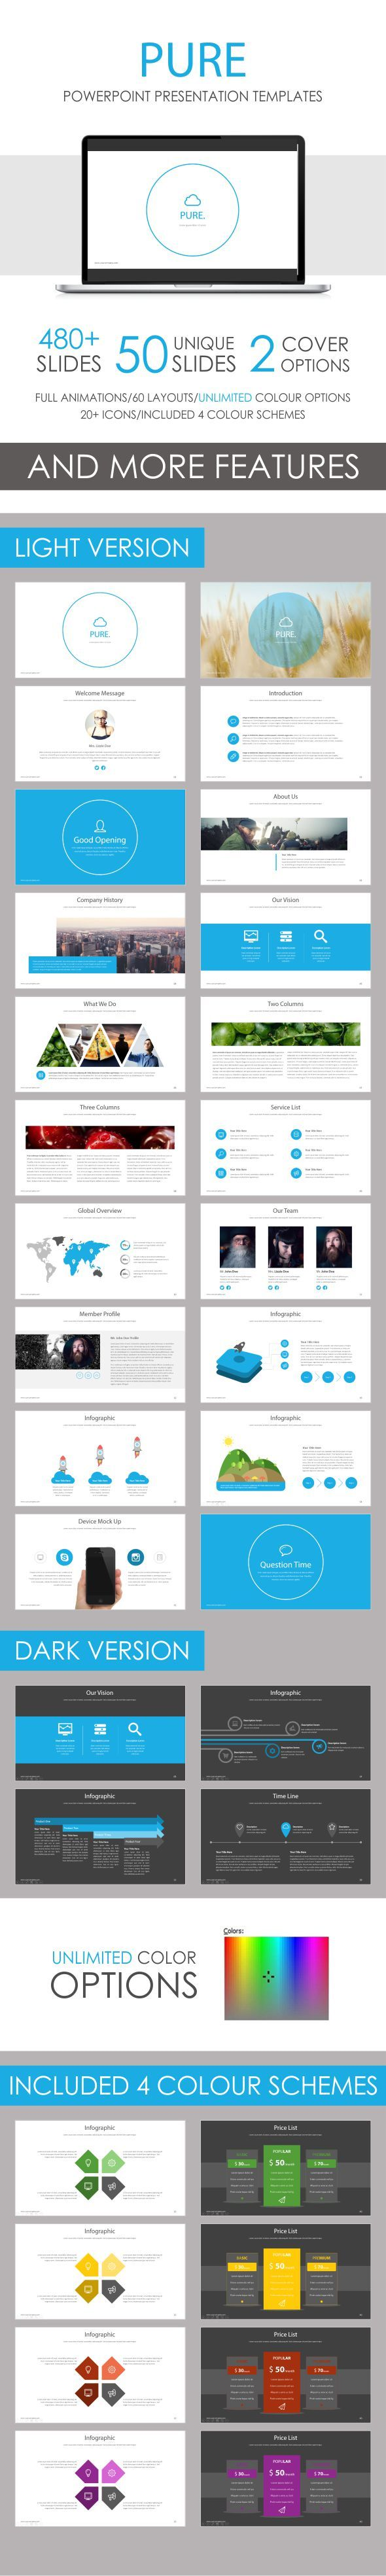 Pure PowerPoint Template. Download here: http://graphicriver.net/item/pure-powerpoint-template/15714576?ref=ksioks